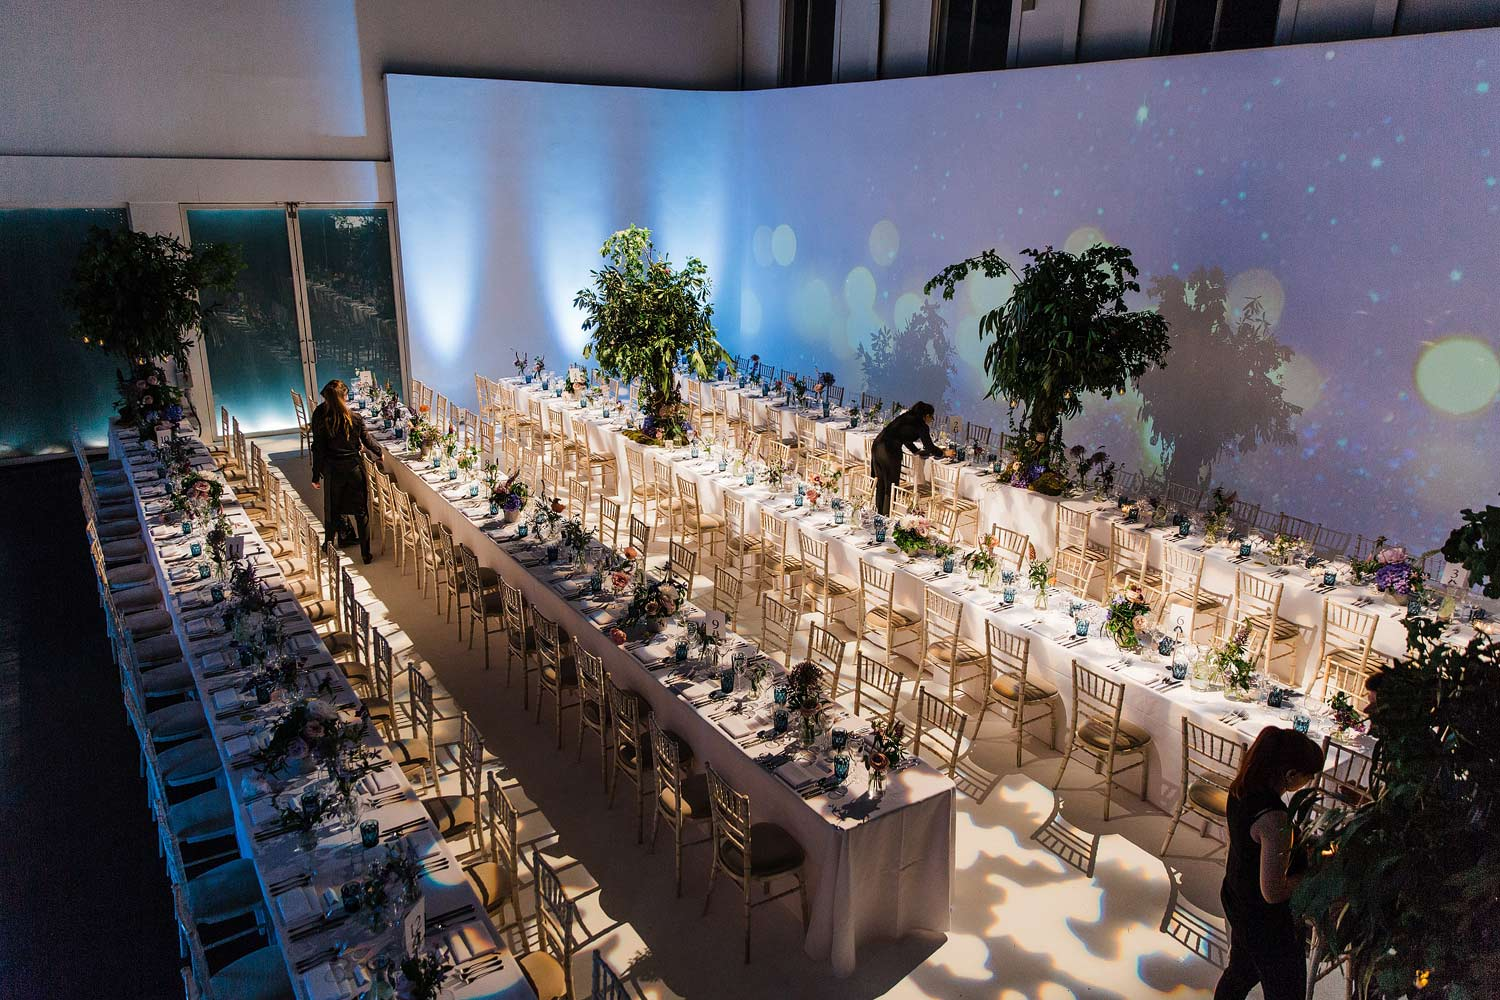 A wedding reception at Sunbeam Studios.